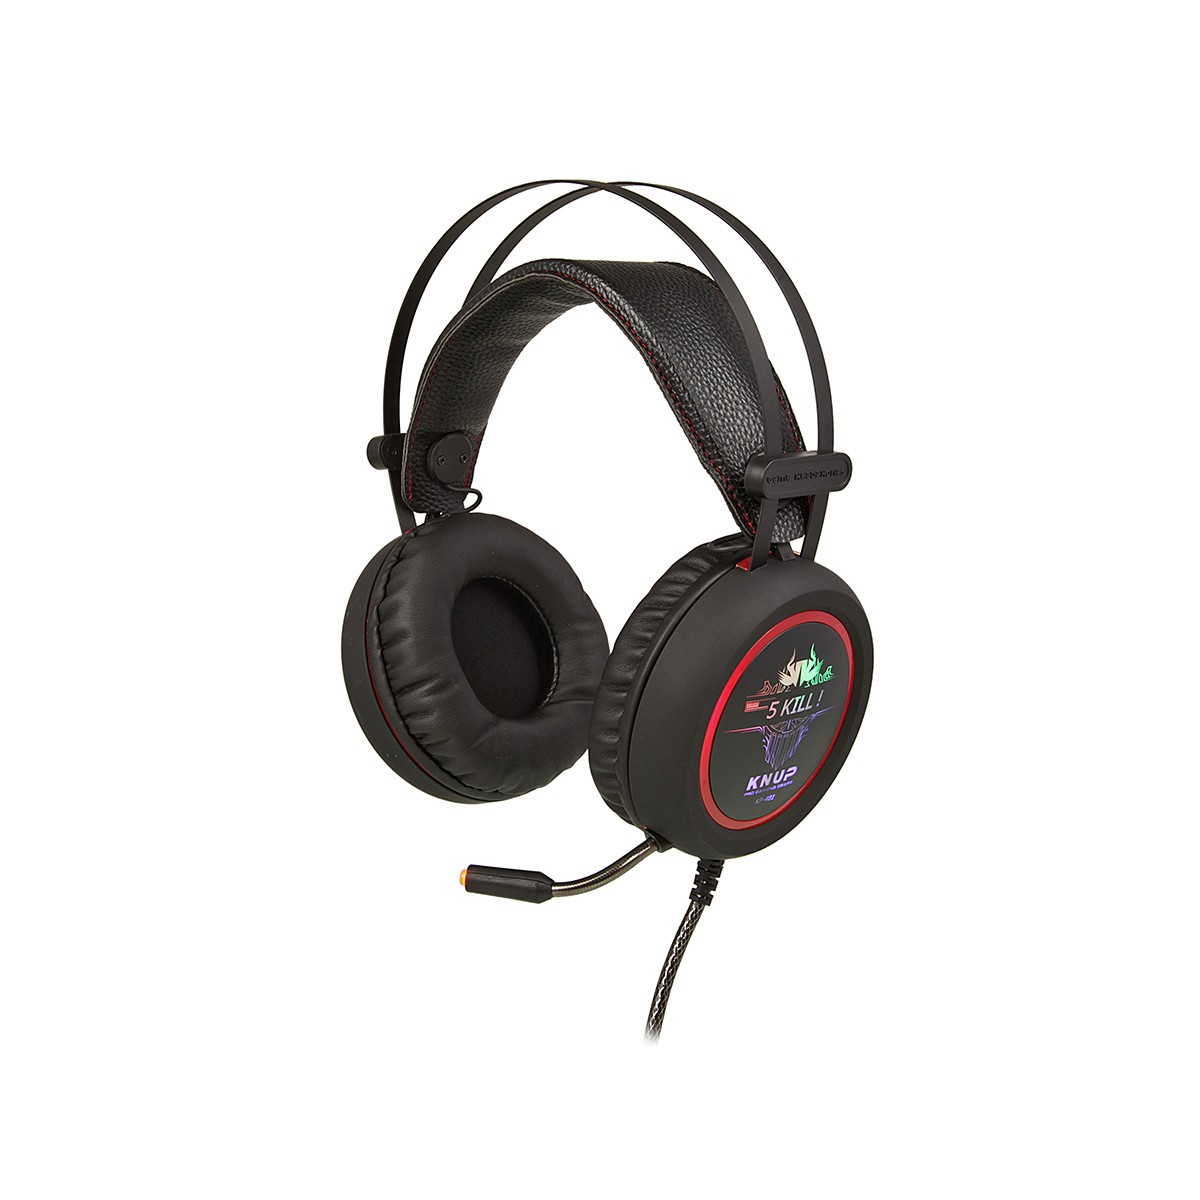 Headset gamer Knup KP401